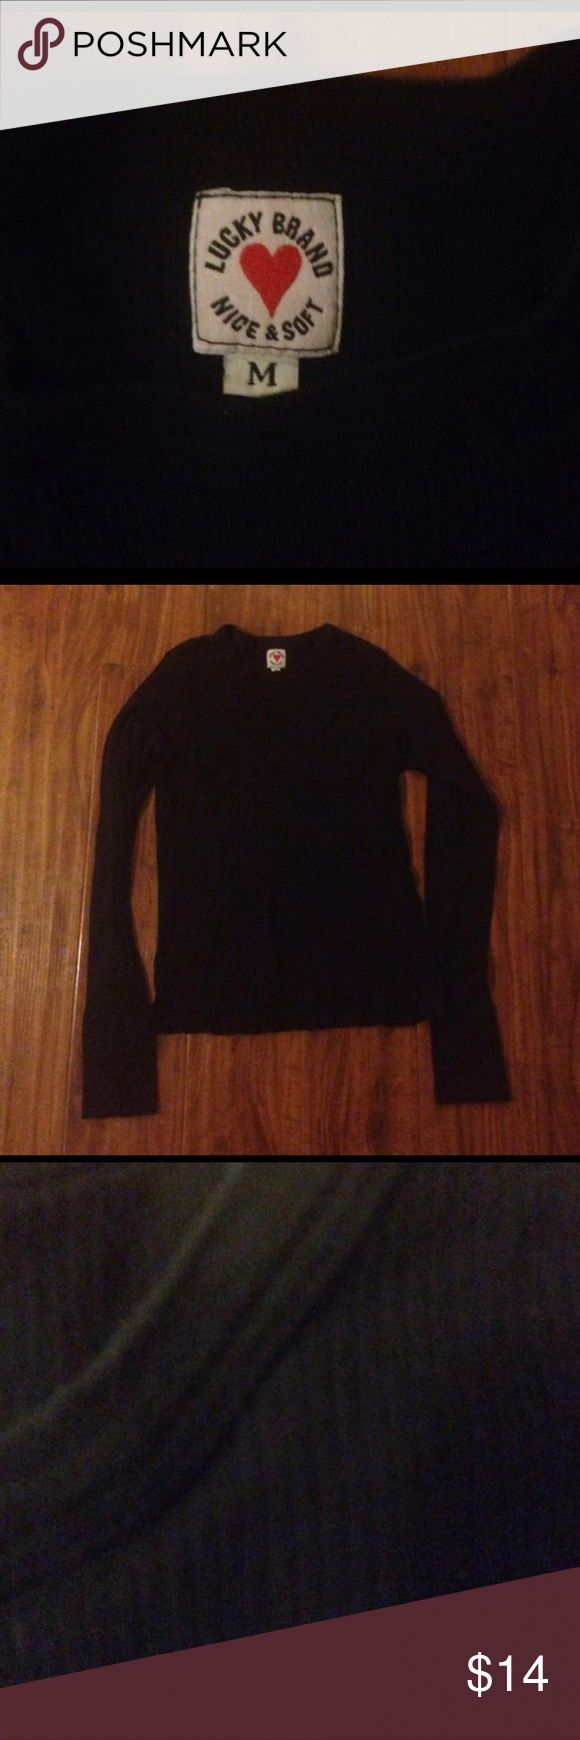 Lucky brand thermal black medium 21 inches from collar to hem , excellent condition Bundle & SAVE 10% off +shipping 💰 Lucky Brand Tops Tees - Long Sleeve